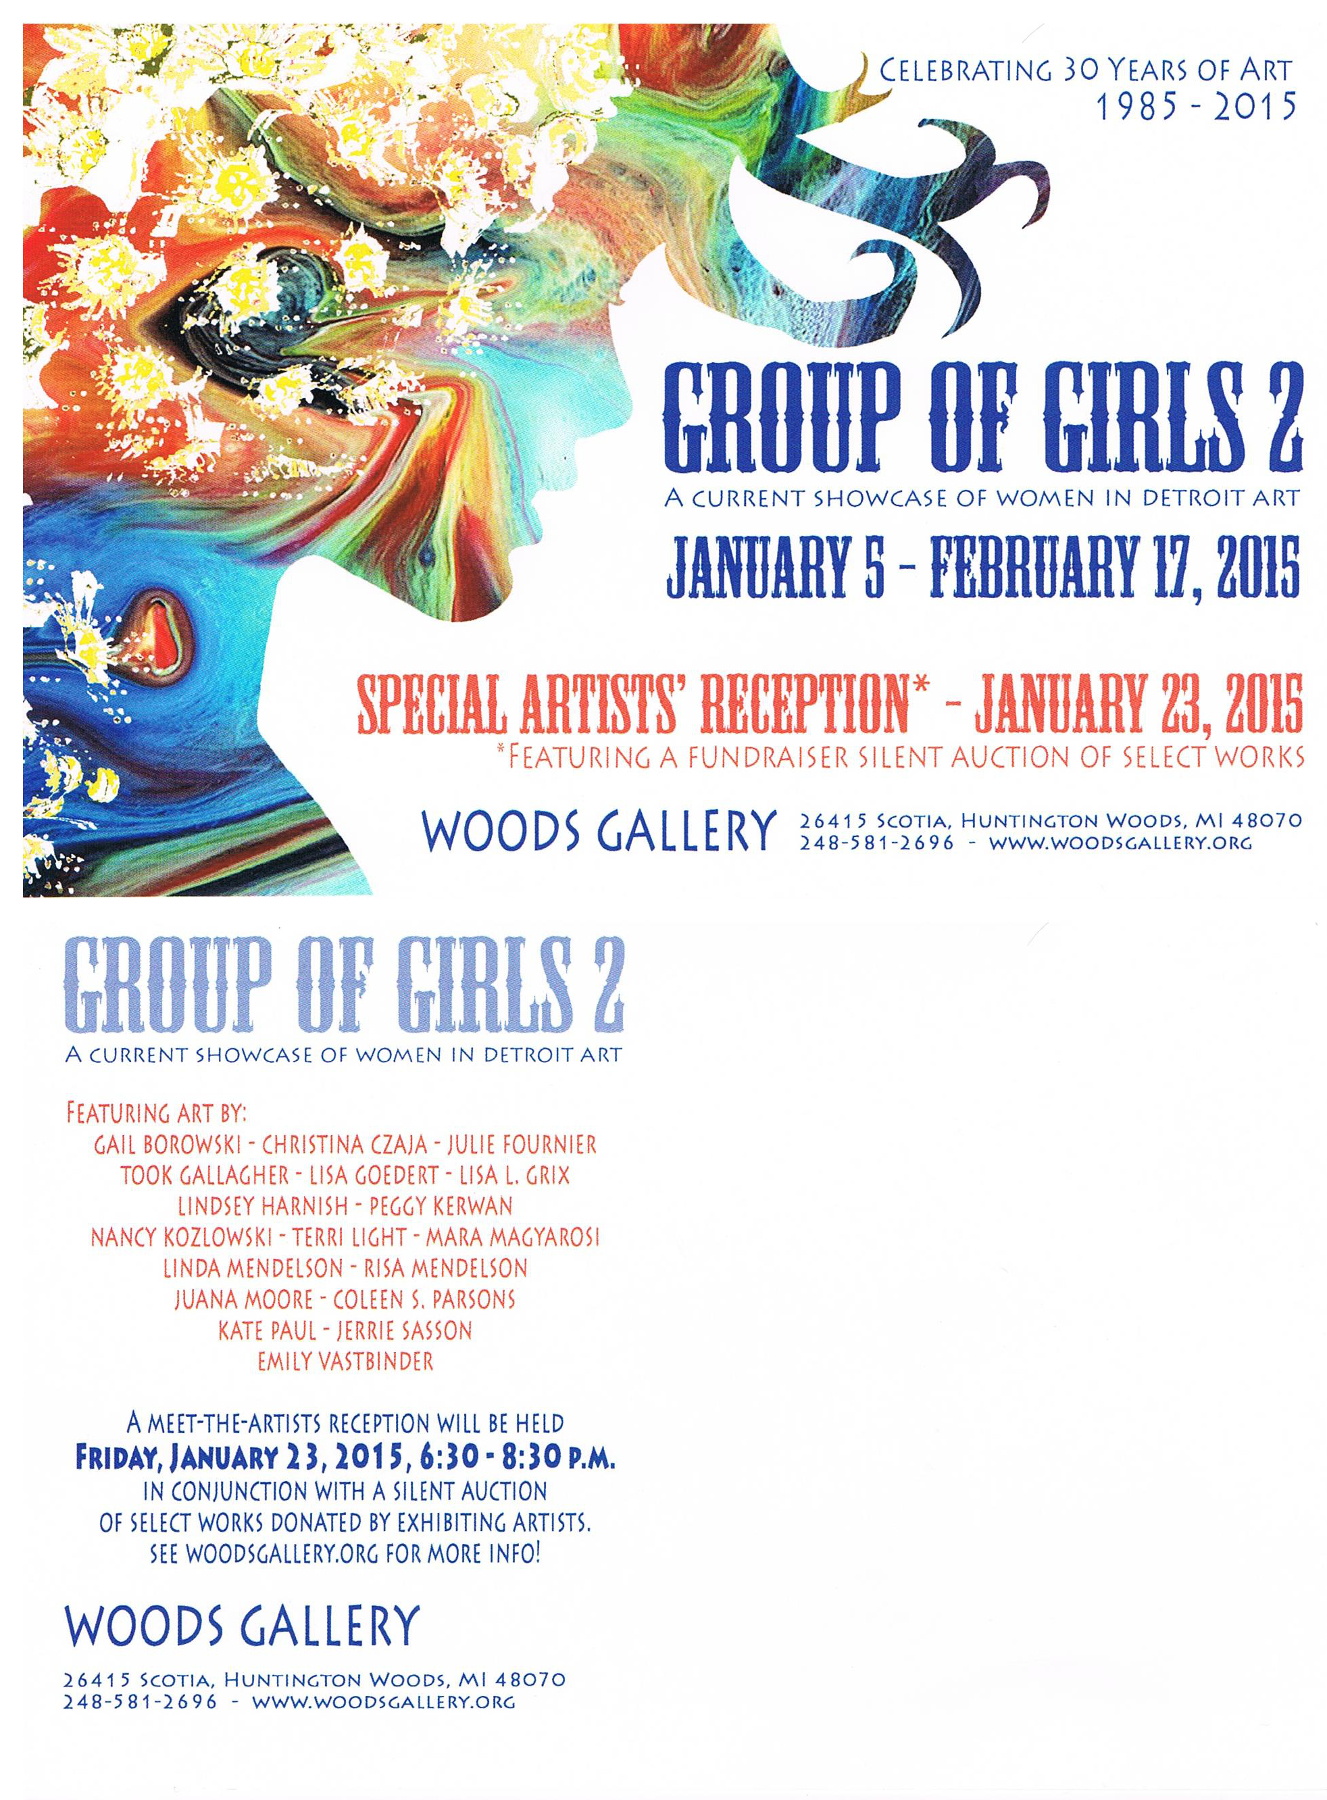 Group of Girls 2 , 2015, at the Woods Gallery, Huntington Woods MI